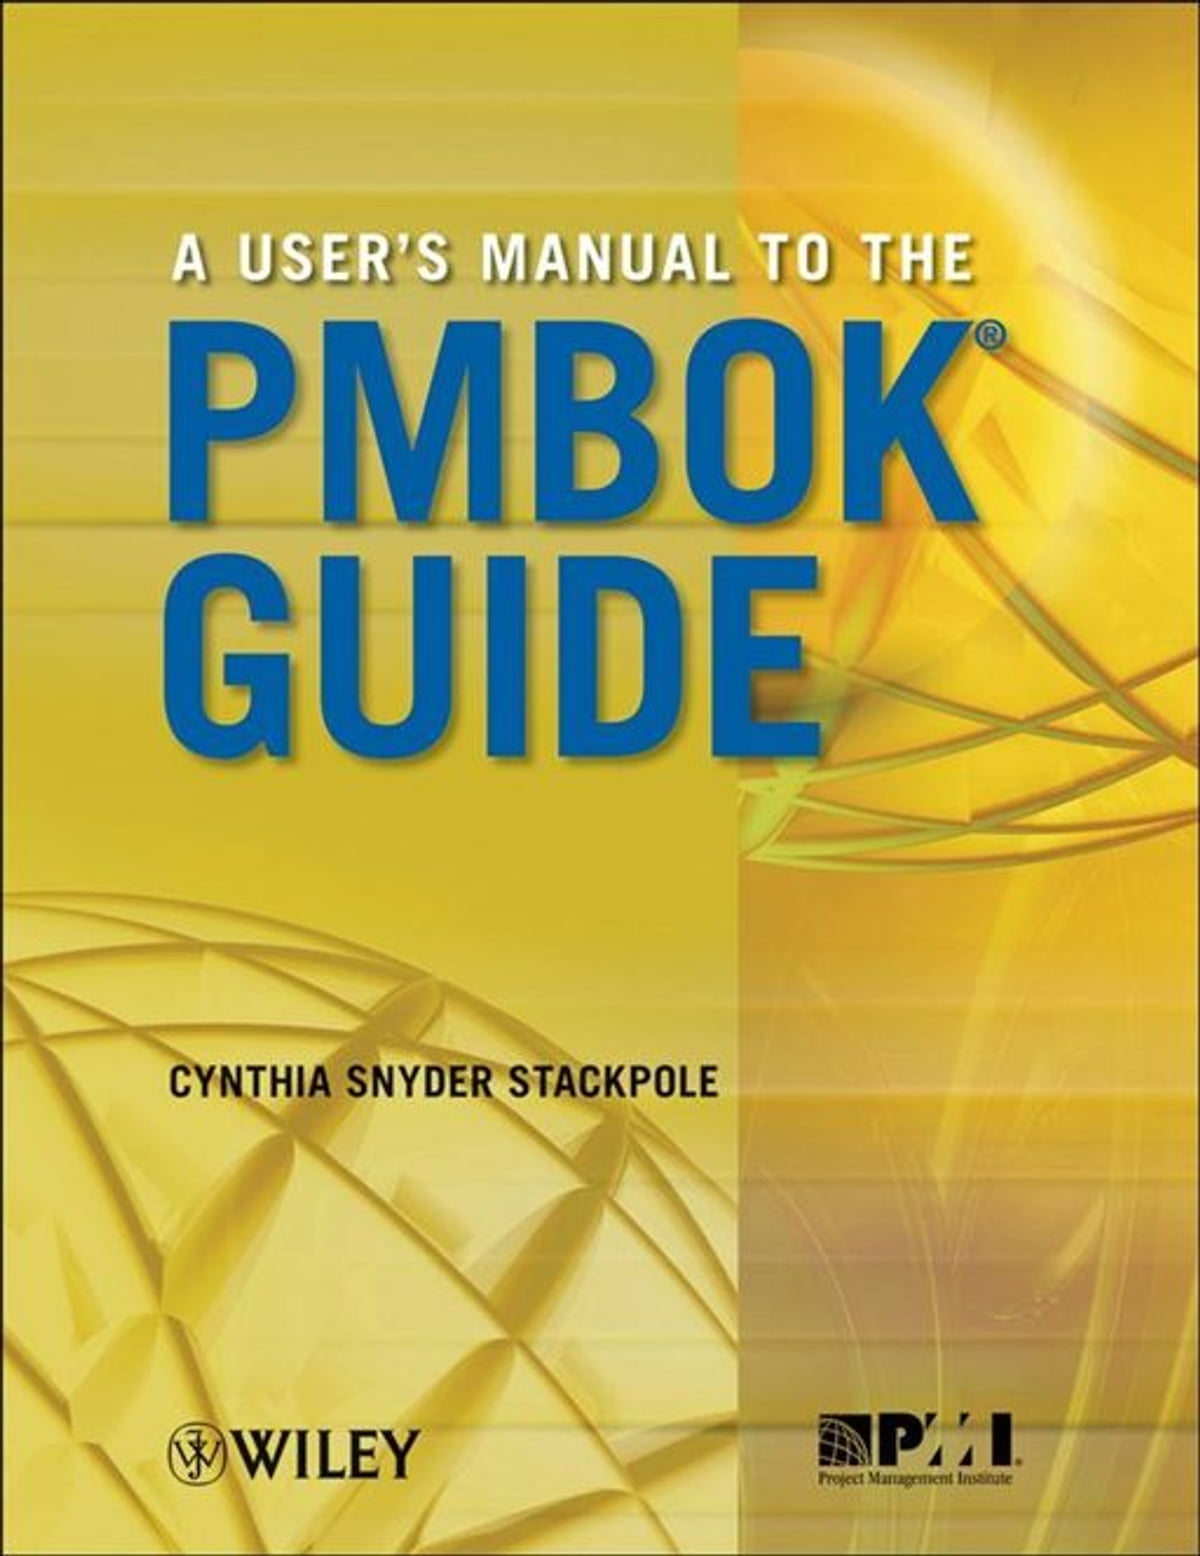 A User's Manual To The Pmbok Guide Ebook By Cynthia Snyder Stackpole